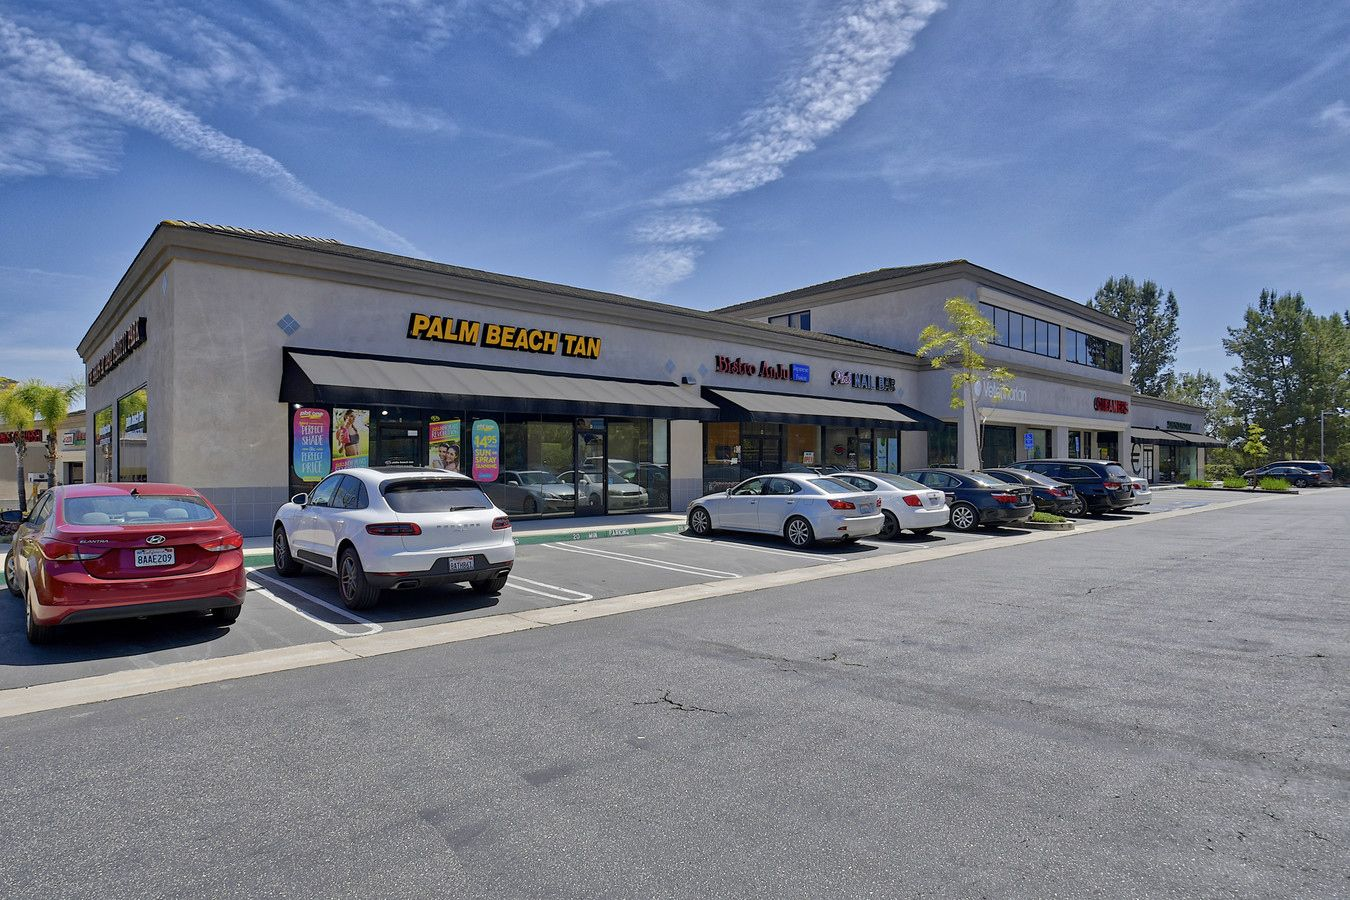 22912 Pacific Park Dr 15770 SF Retail Building Offered at 12050000 at a 548 Cap Rate in Aliso Viejo CA